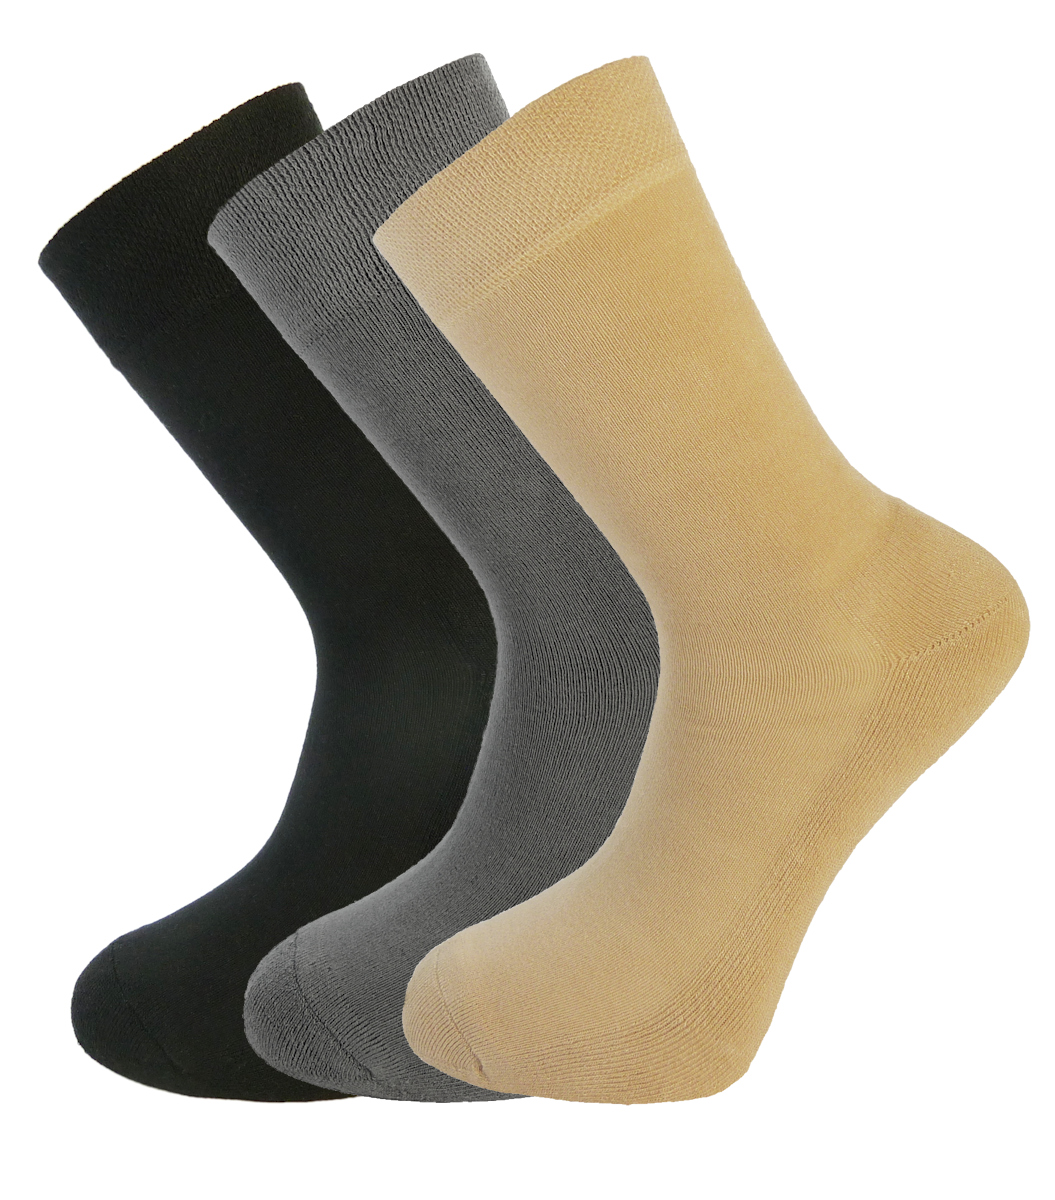 Bamboo Socks Unique Double Sole Multi Pack Black Grey